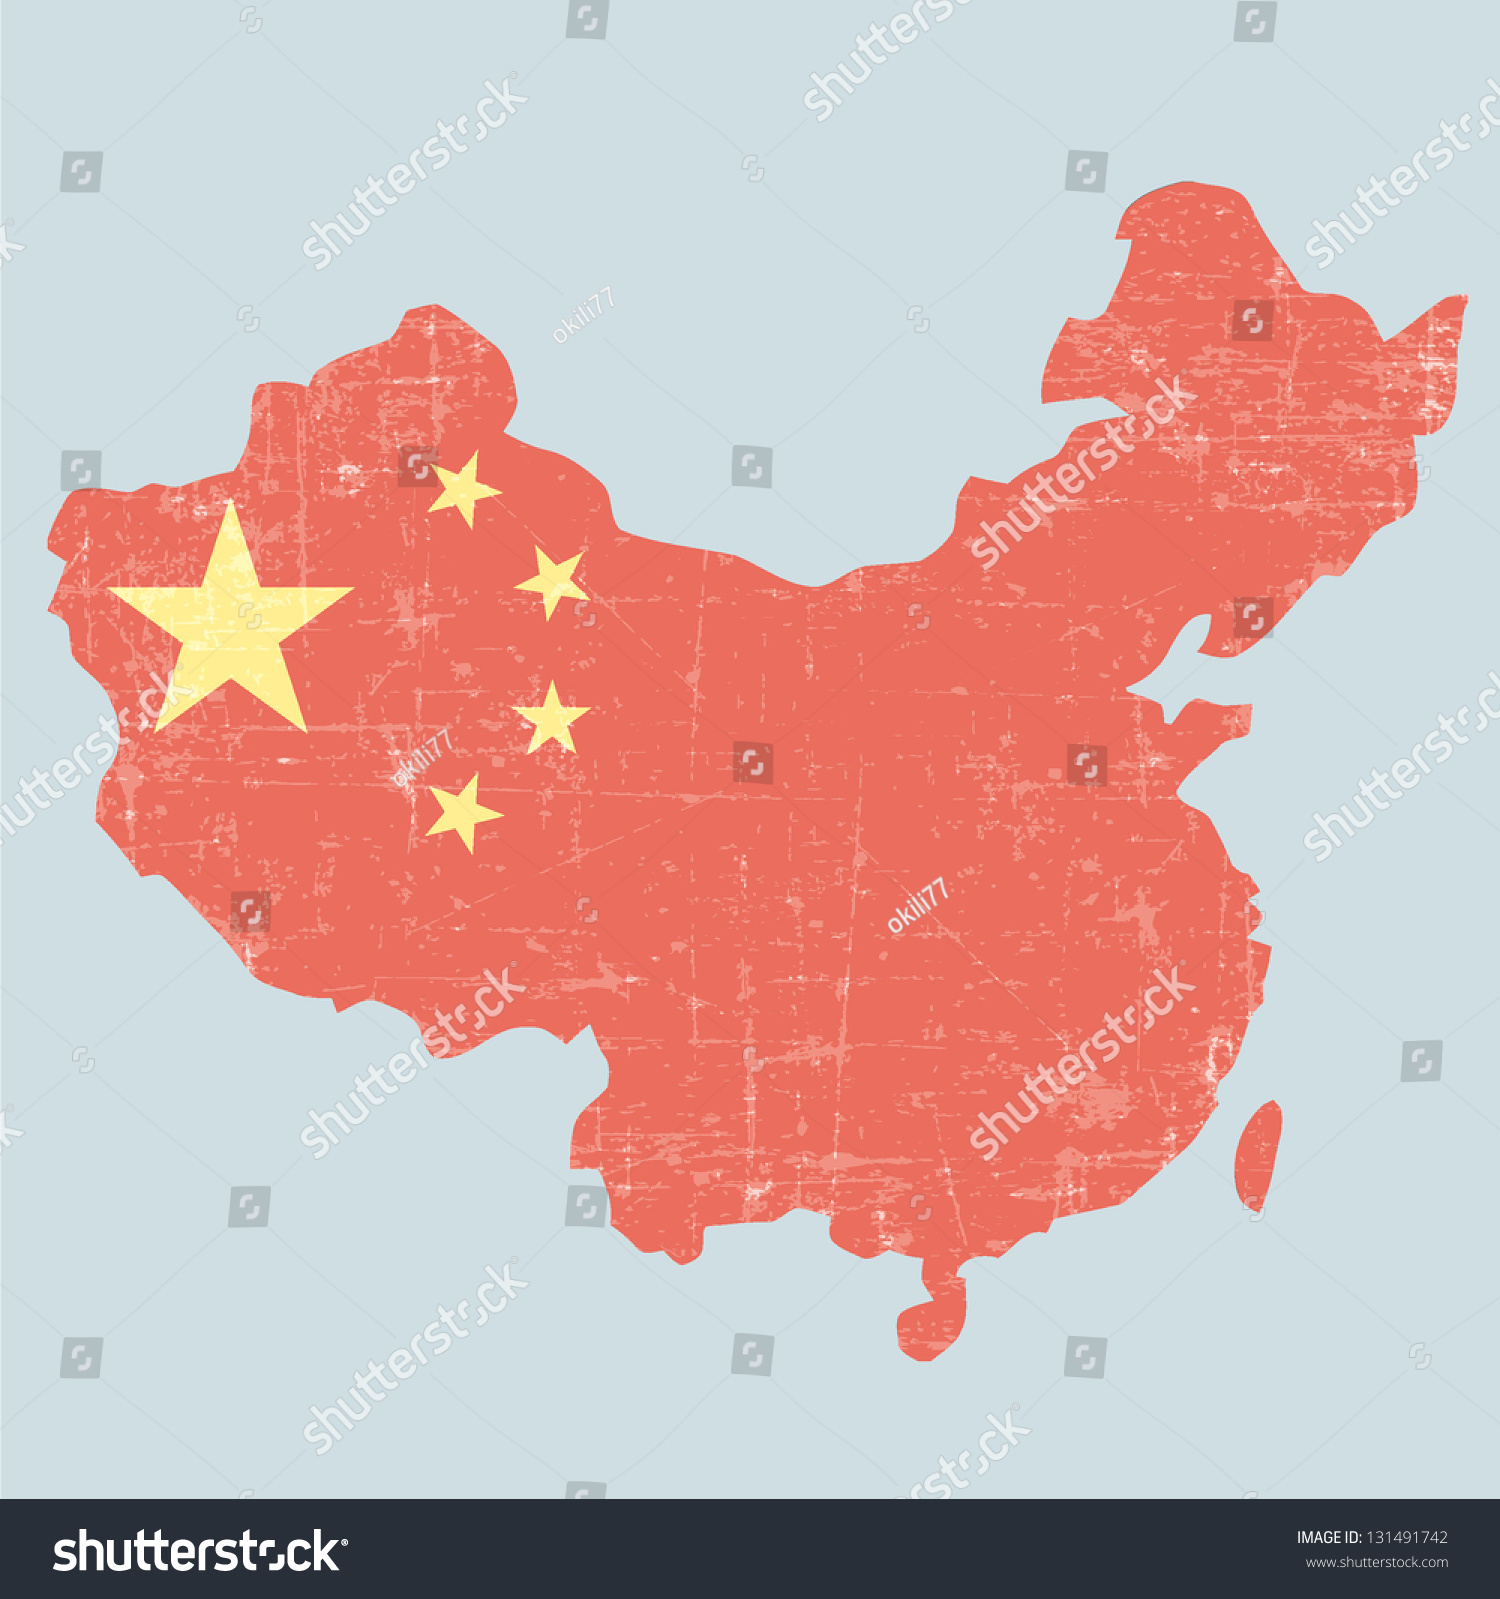 China Map Poster.China Vintage Mapold Looking Poster Stock Illustration 131491742